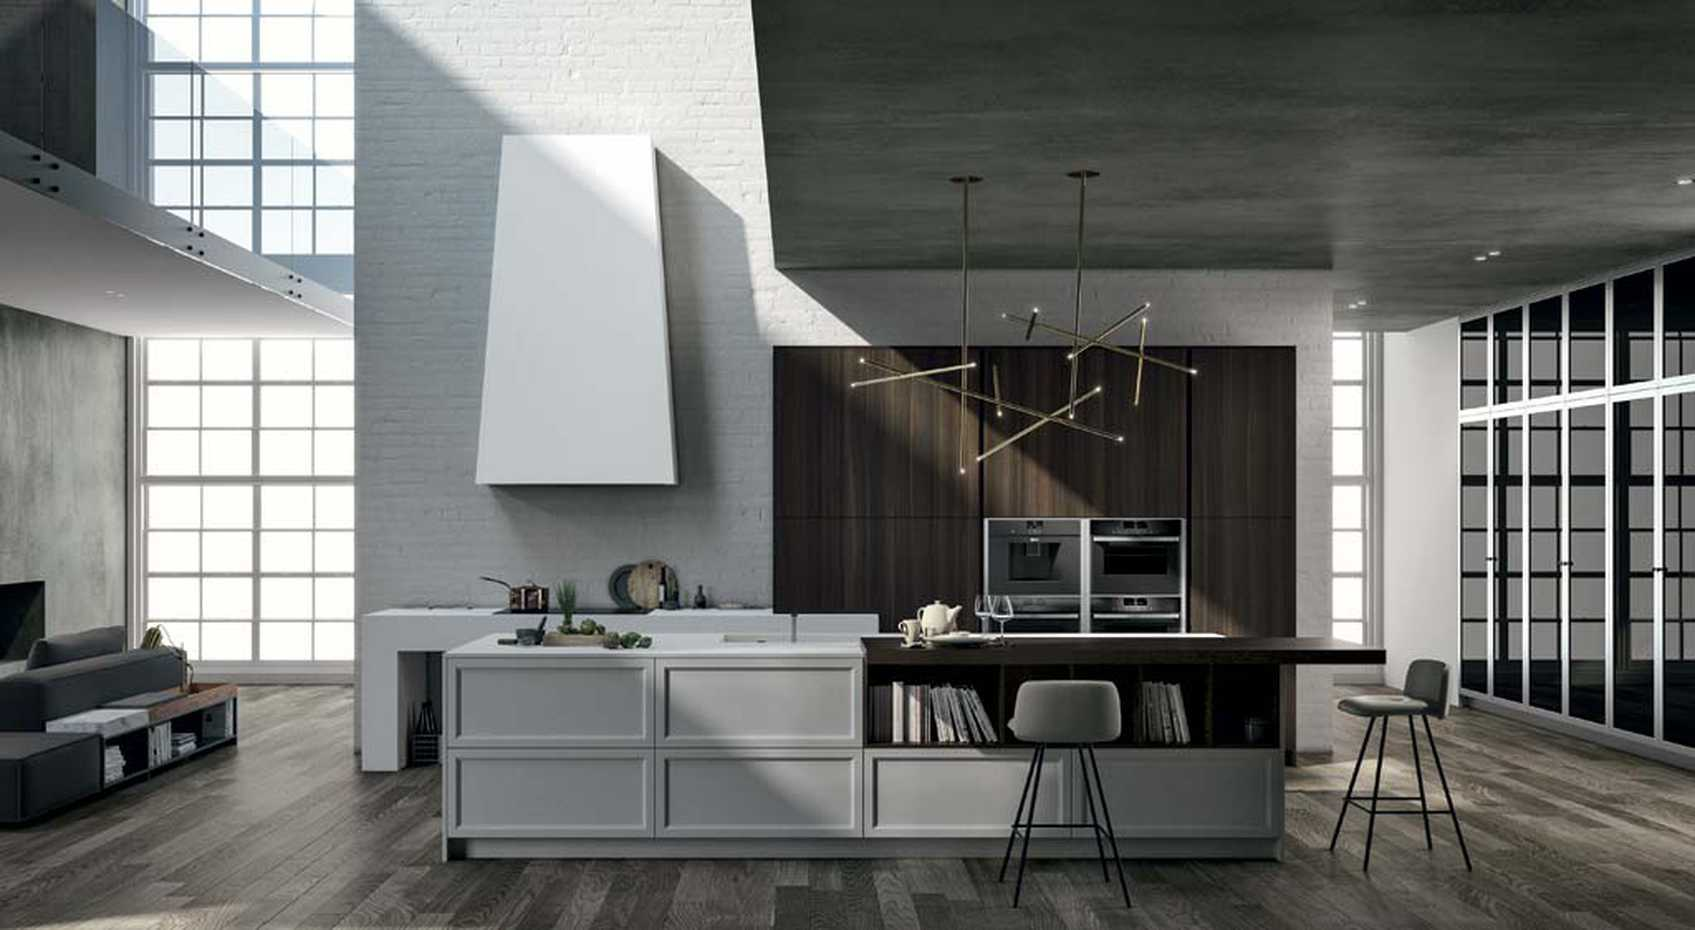 Vogue by Doimo Cucine product image 1